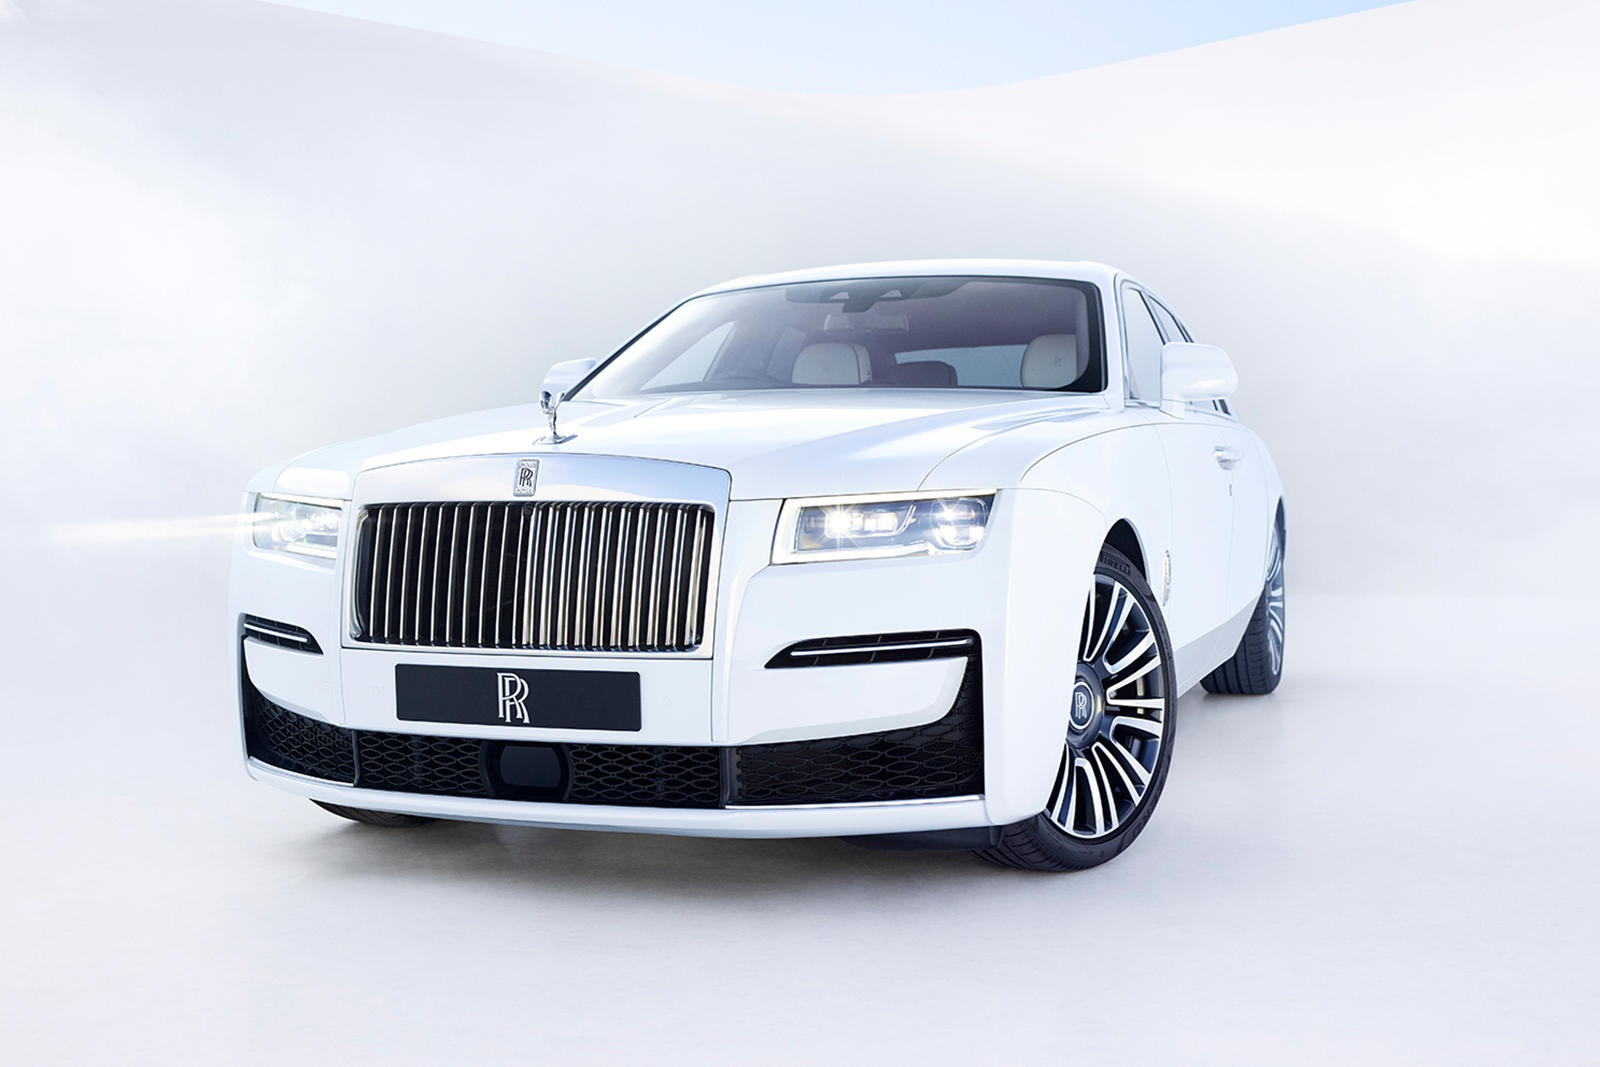 Danh gia Rolls-Royce Ghost 2021 anh 11